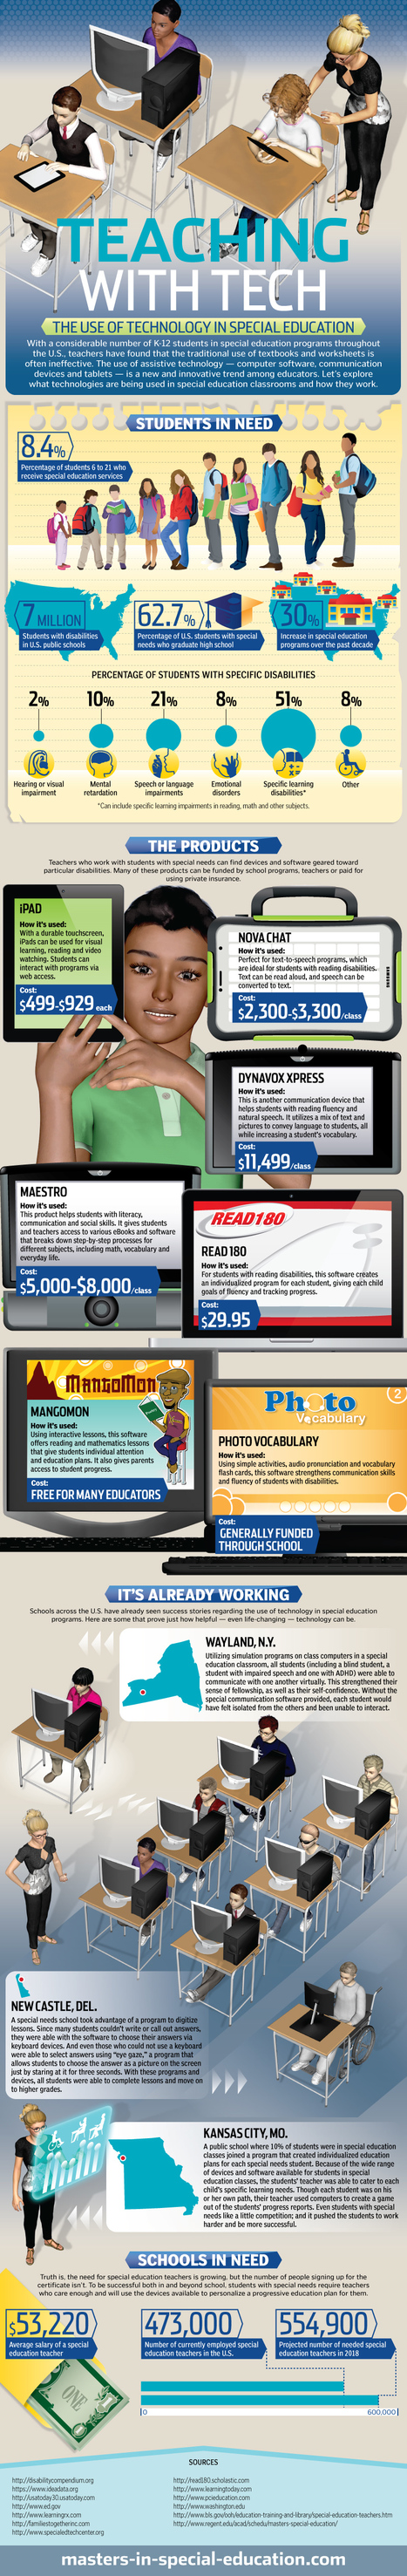 The Use of Technology in Special Education Infographic - e-Learning Infographics | Autism | Scoop.it